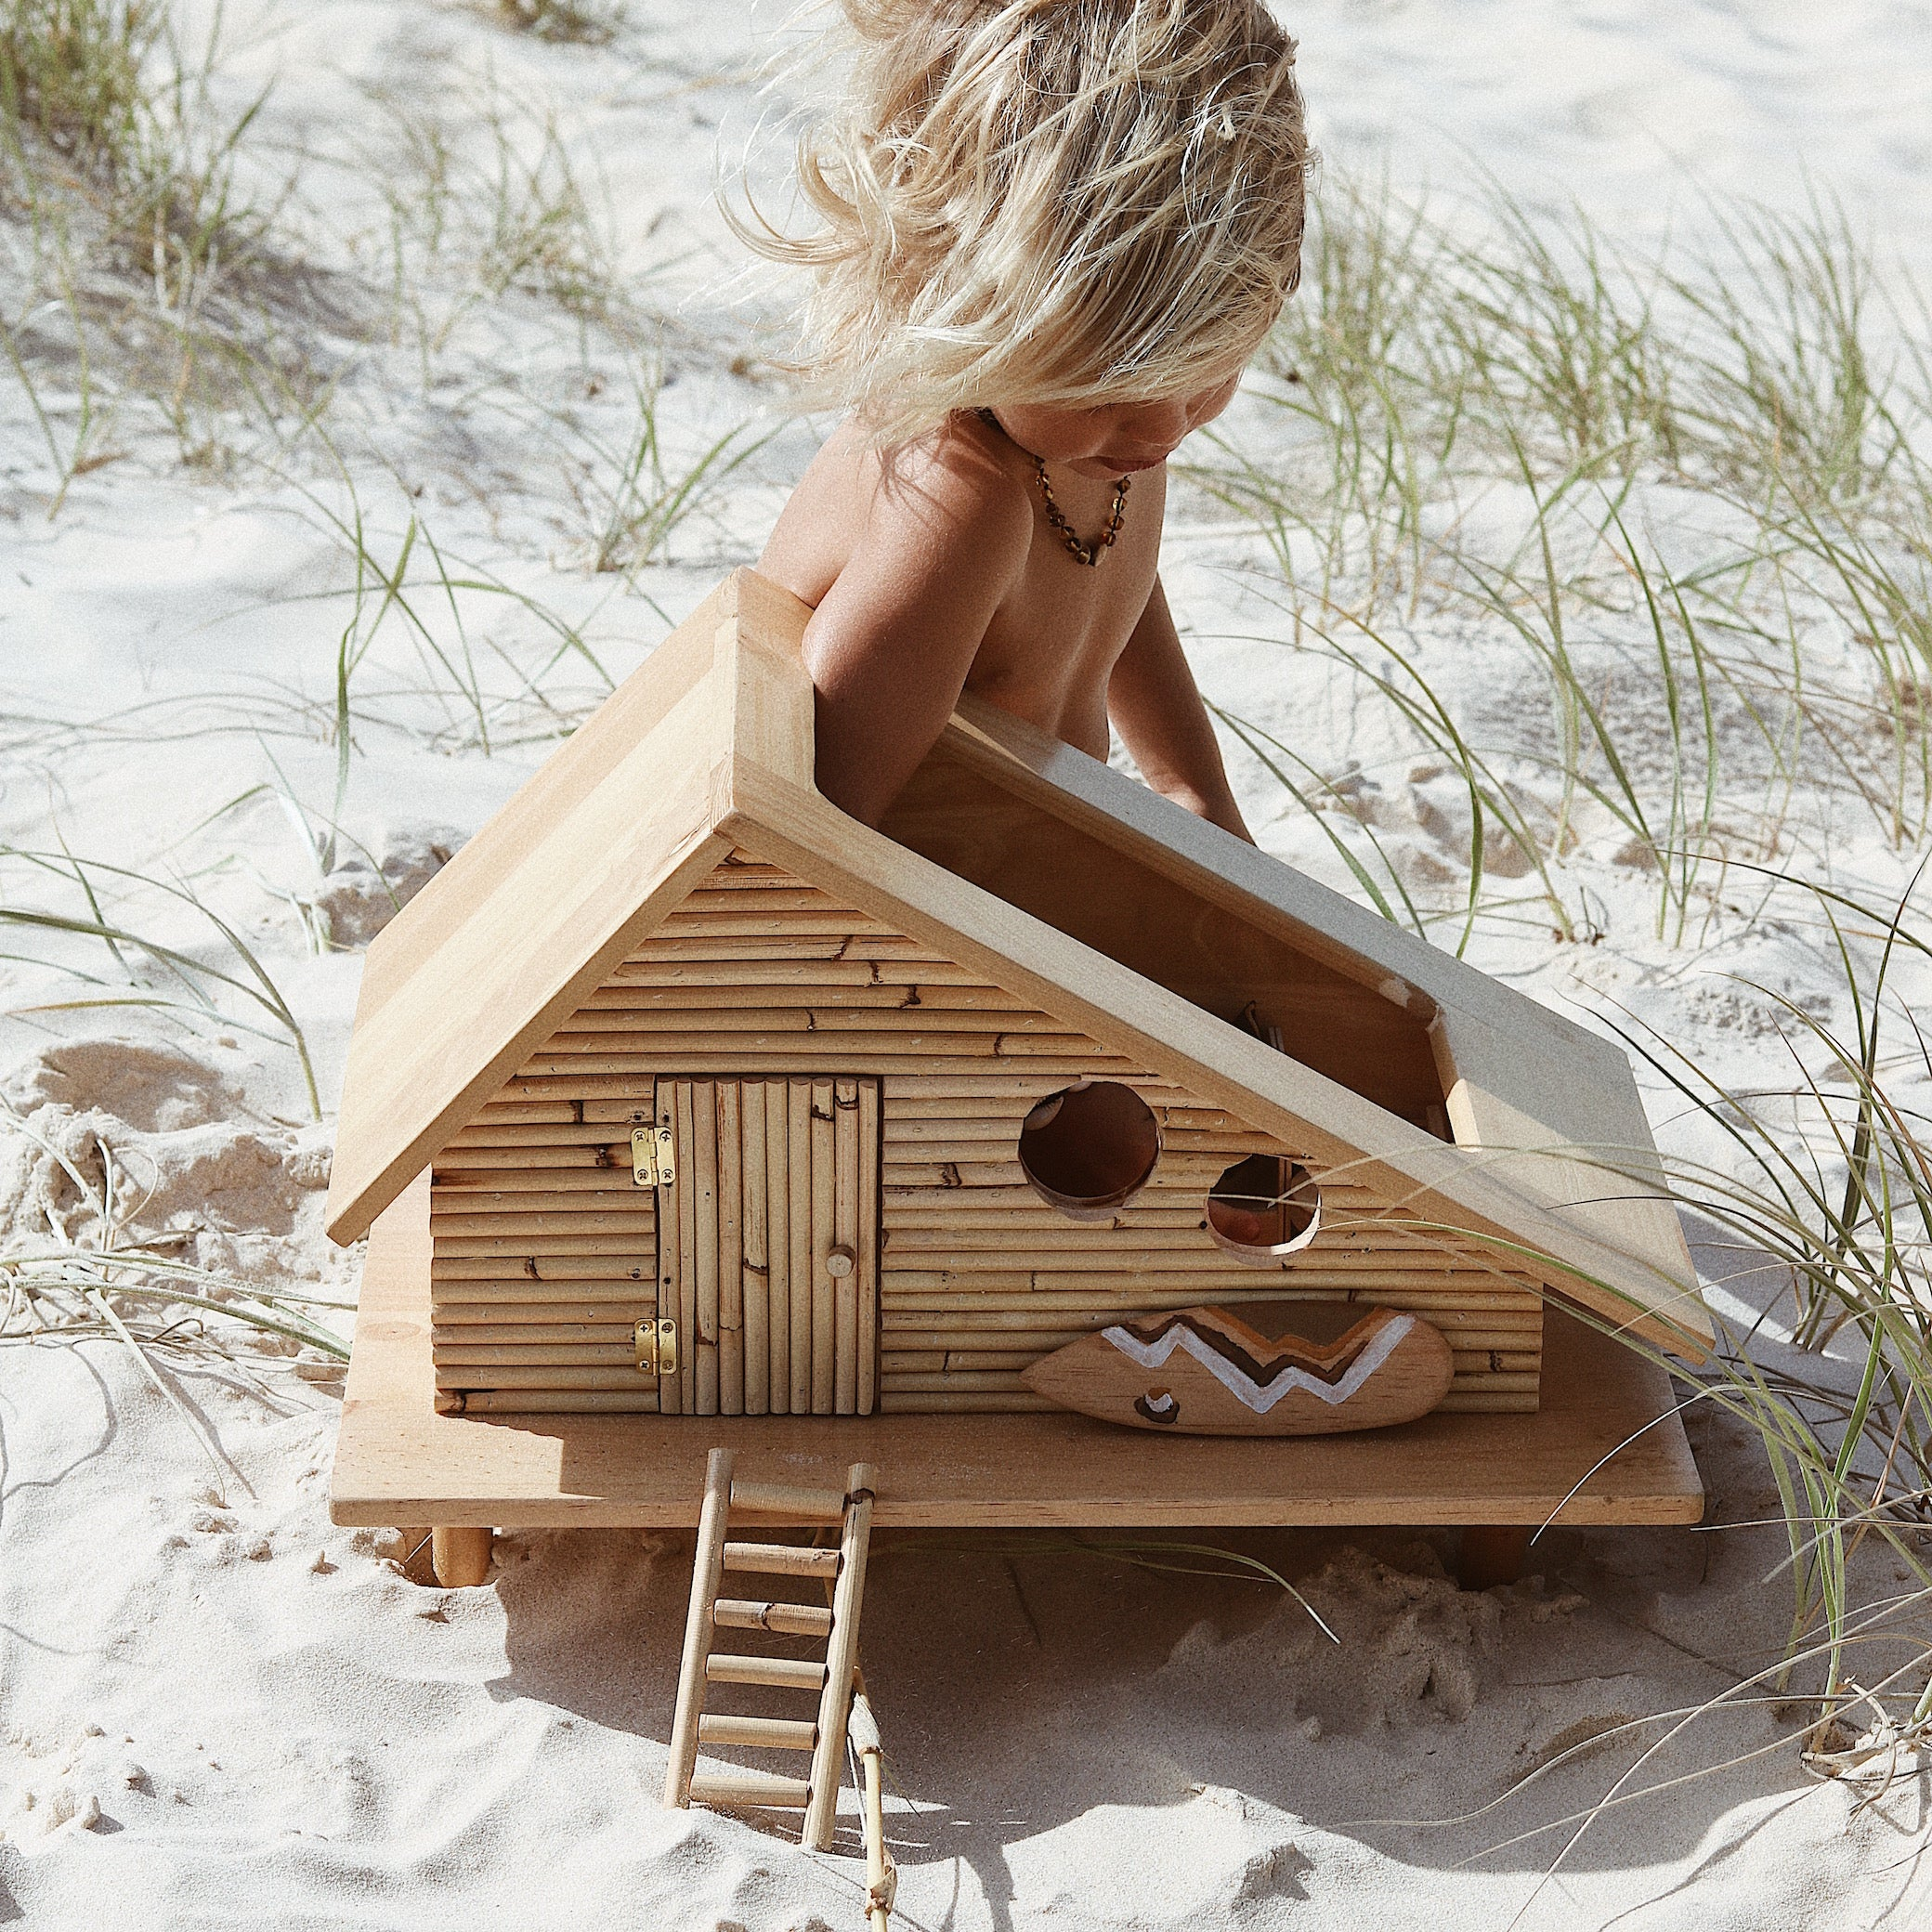 Surf Shack Dollhouse Furniture Kit [PRE-ORDER]